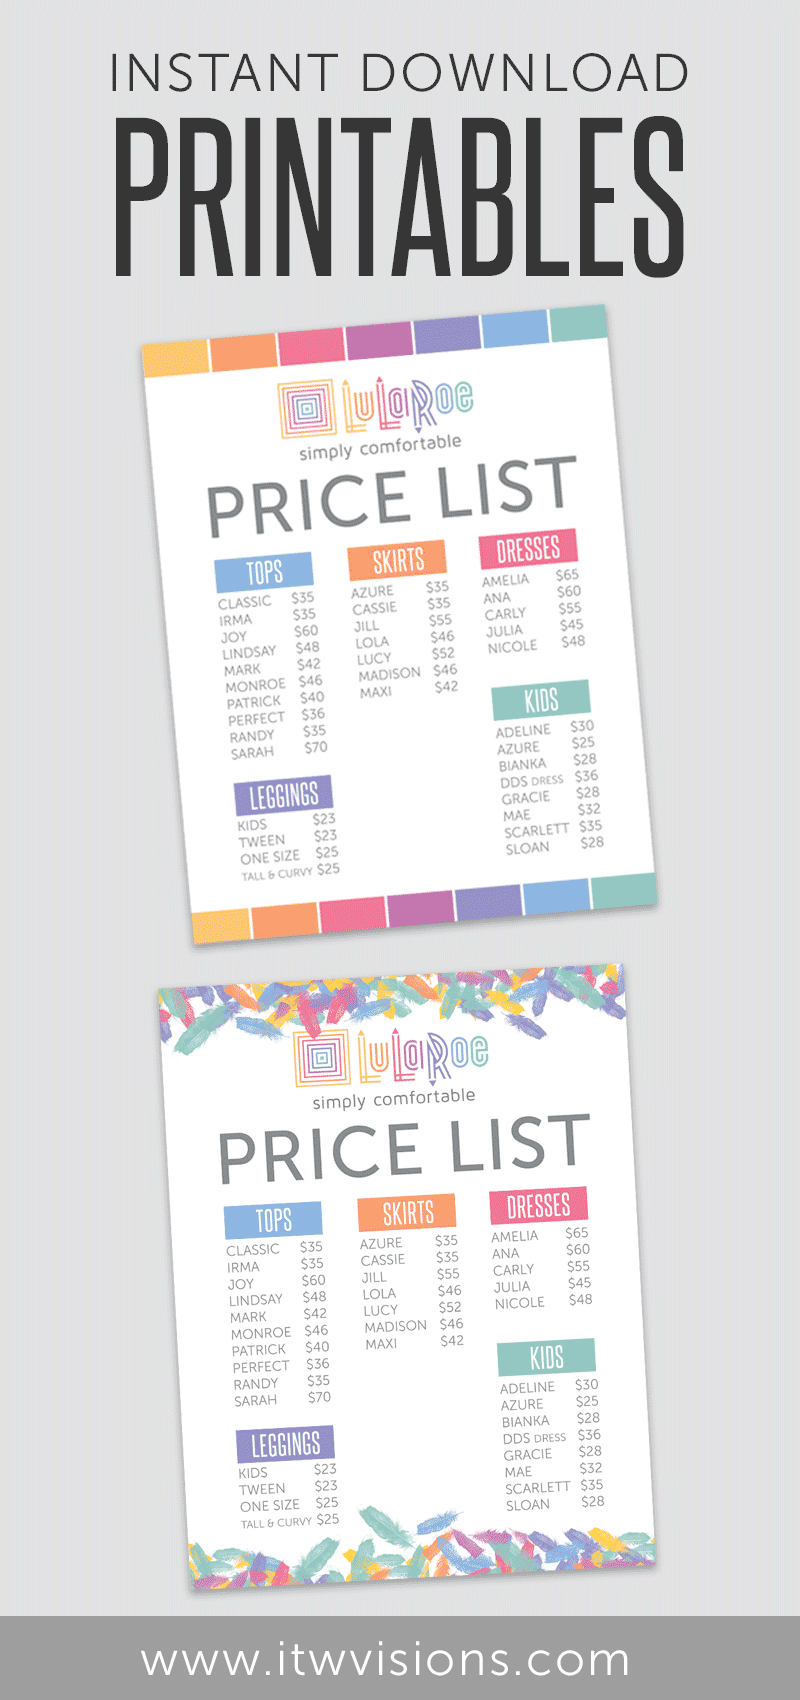 image about Lularoe Price List Printable known as Pin by means of Tammy - Image Designer upon Boost Your Minimal